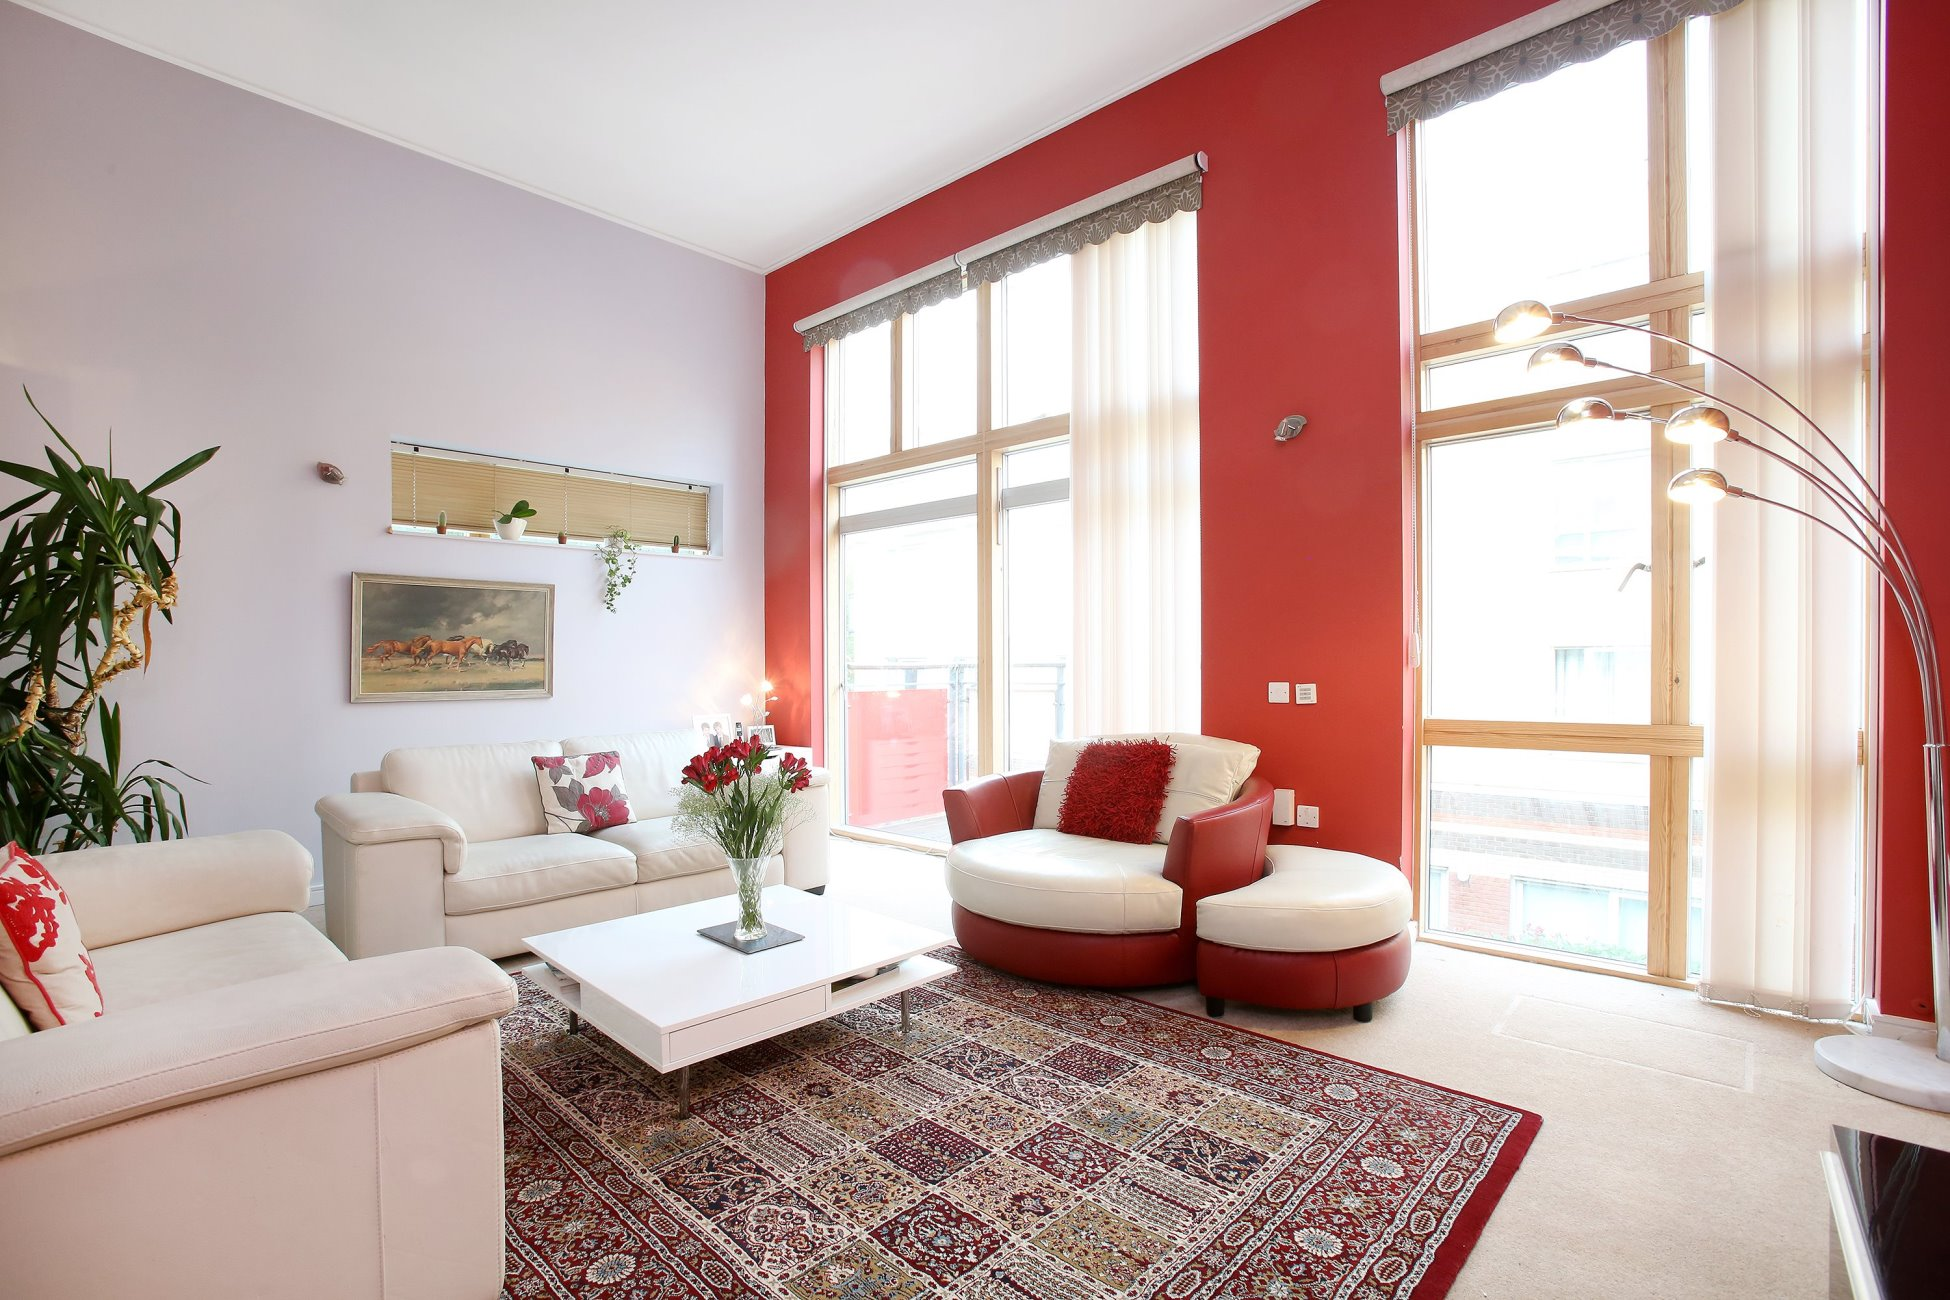 3 Bedroom House in Greenwich. - Changing Property